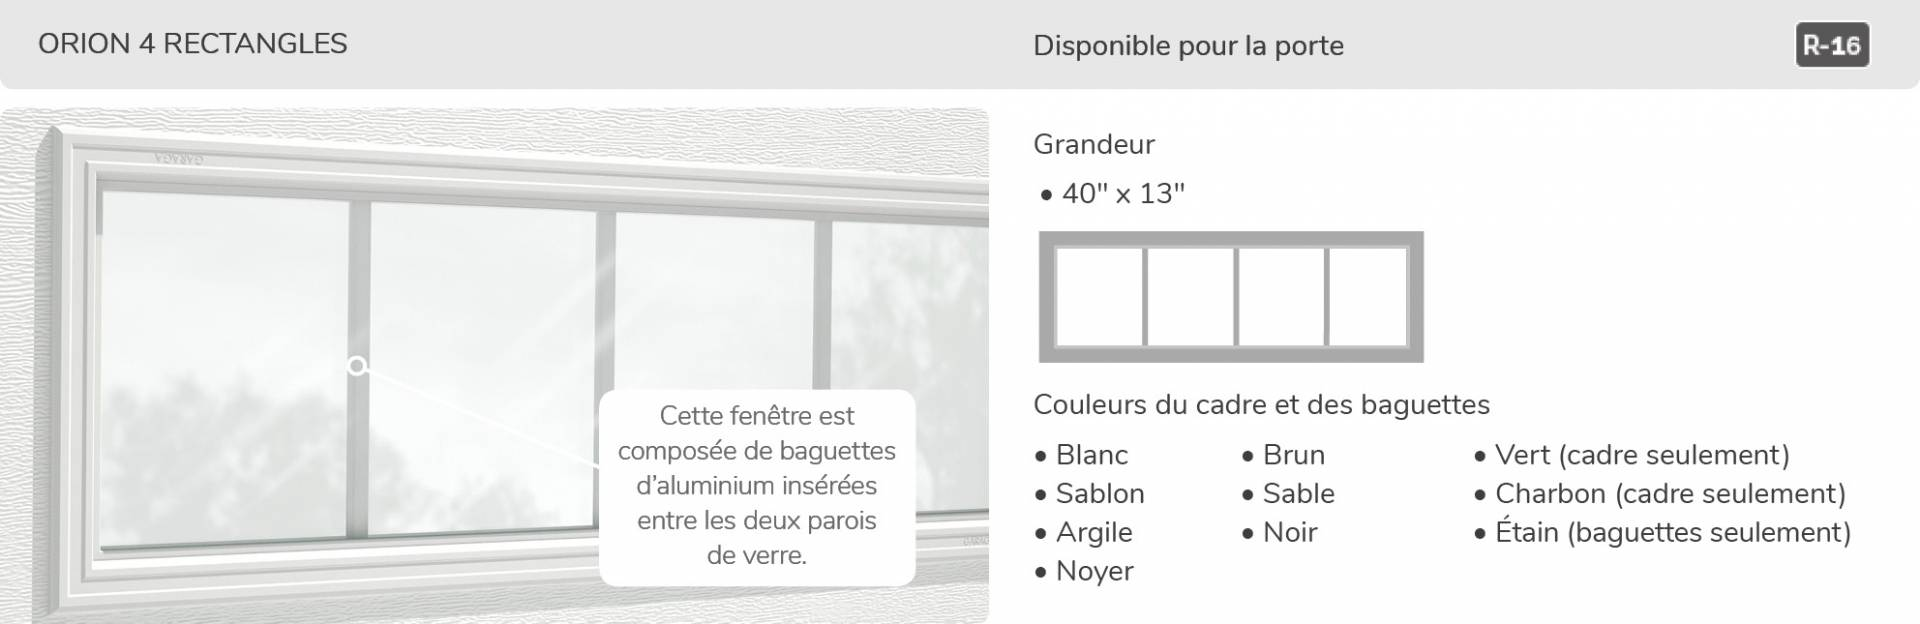 Orion 4 rectangle, 21' x 13', disponible pour la porte R-16